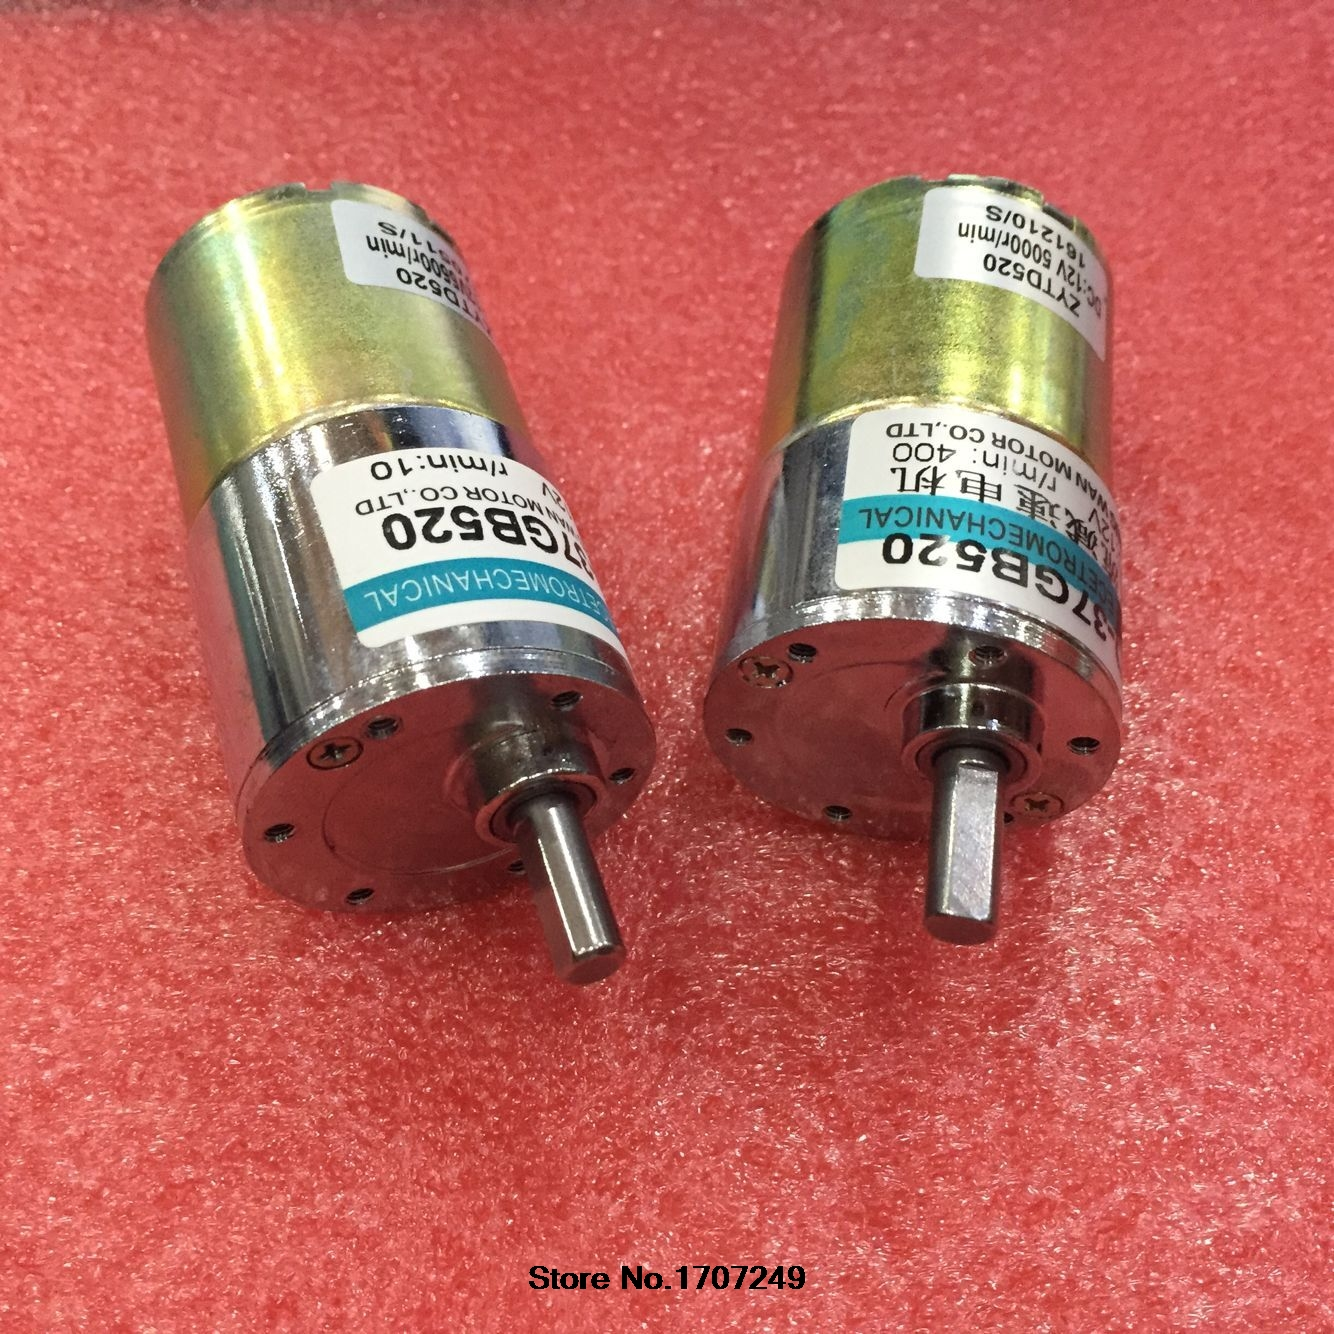 8PCS 12V 24V 10W XD 37GB520 miniature DC geared motor low speed high torque can adjustable